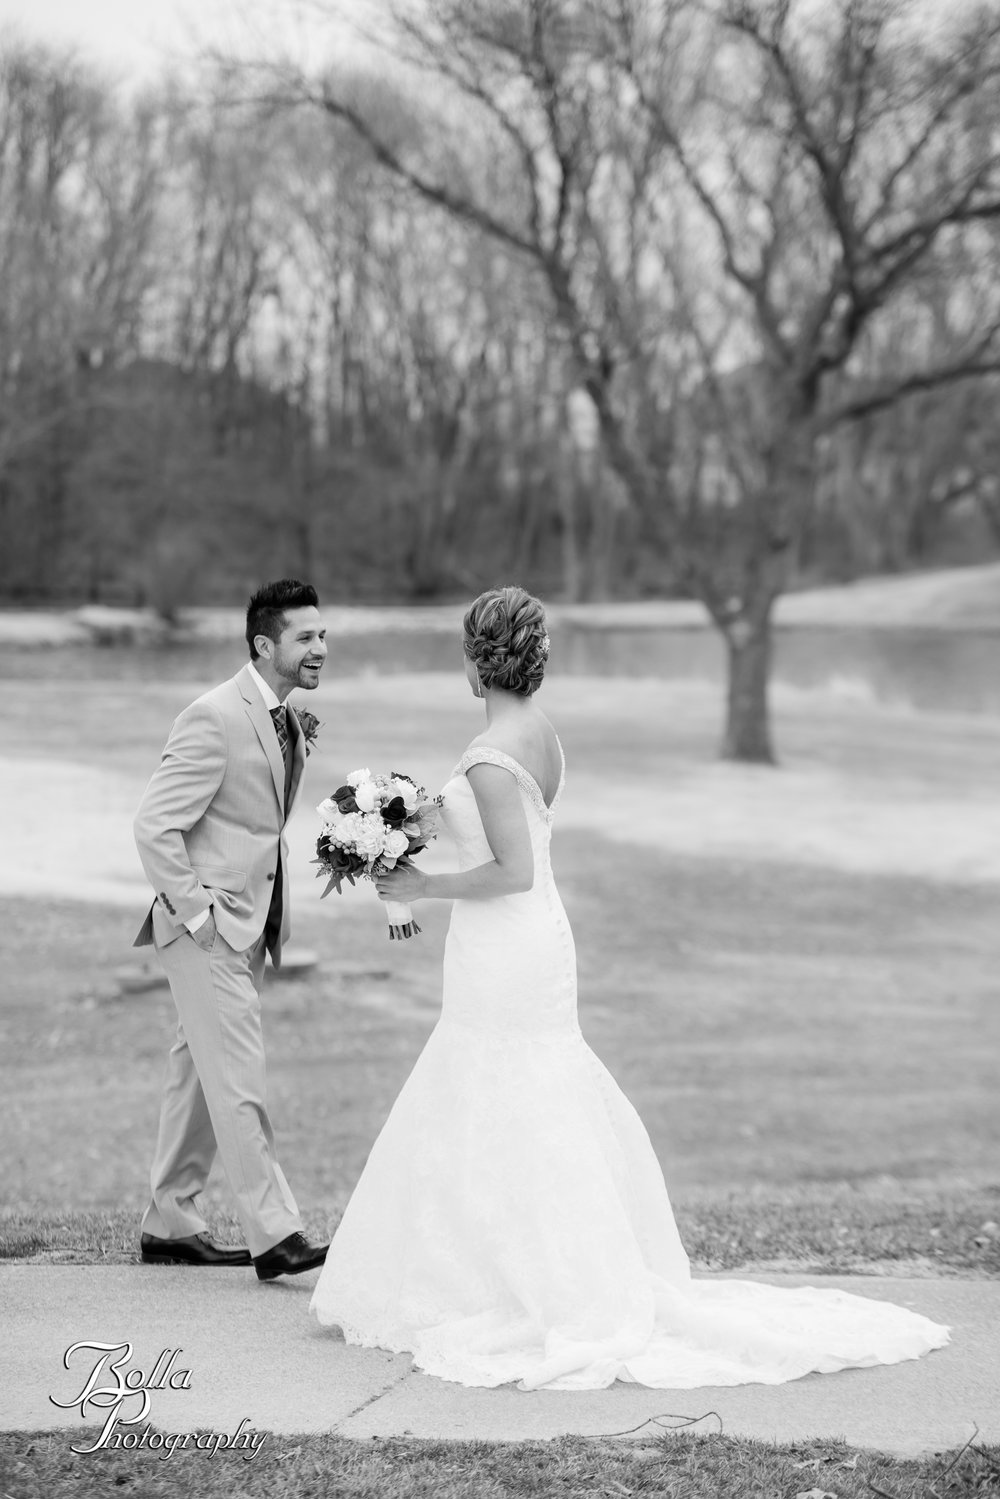 Bolla_photography_edwardsville_wedding_photographer_st_louis_weddings_highland_Allen_Warren_winter_red-0103.jpg